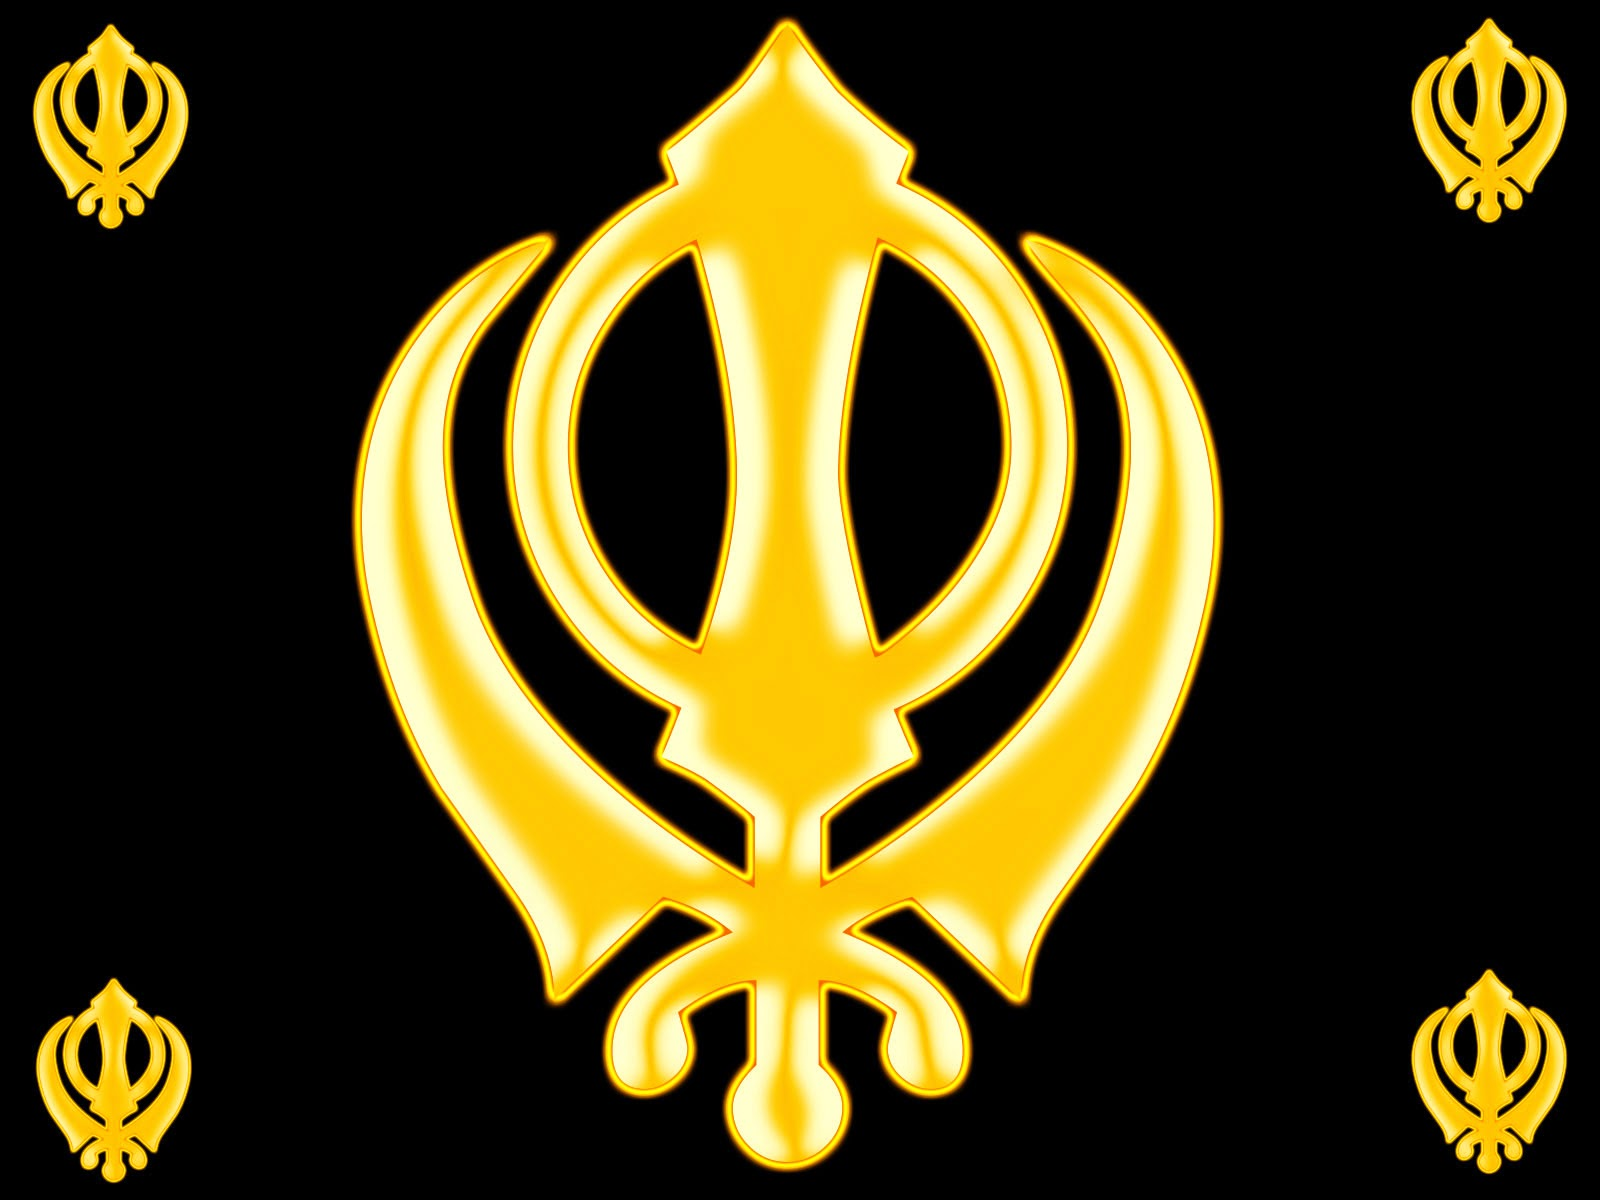 GOLDEN KHANDA OVER BLACK BACKGROUND WALLPAPER 2014